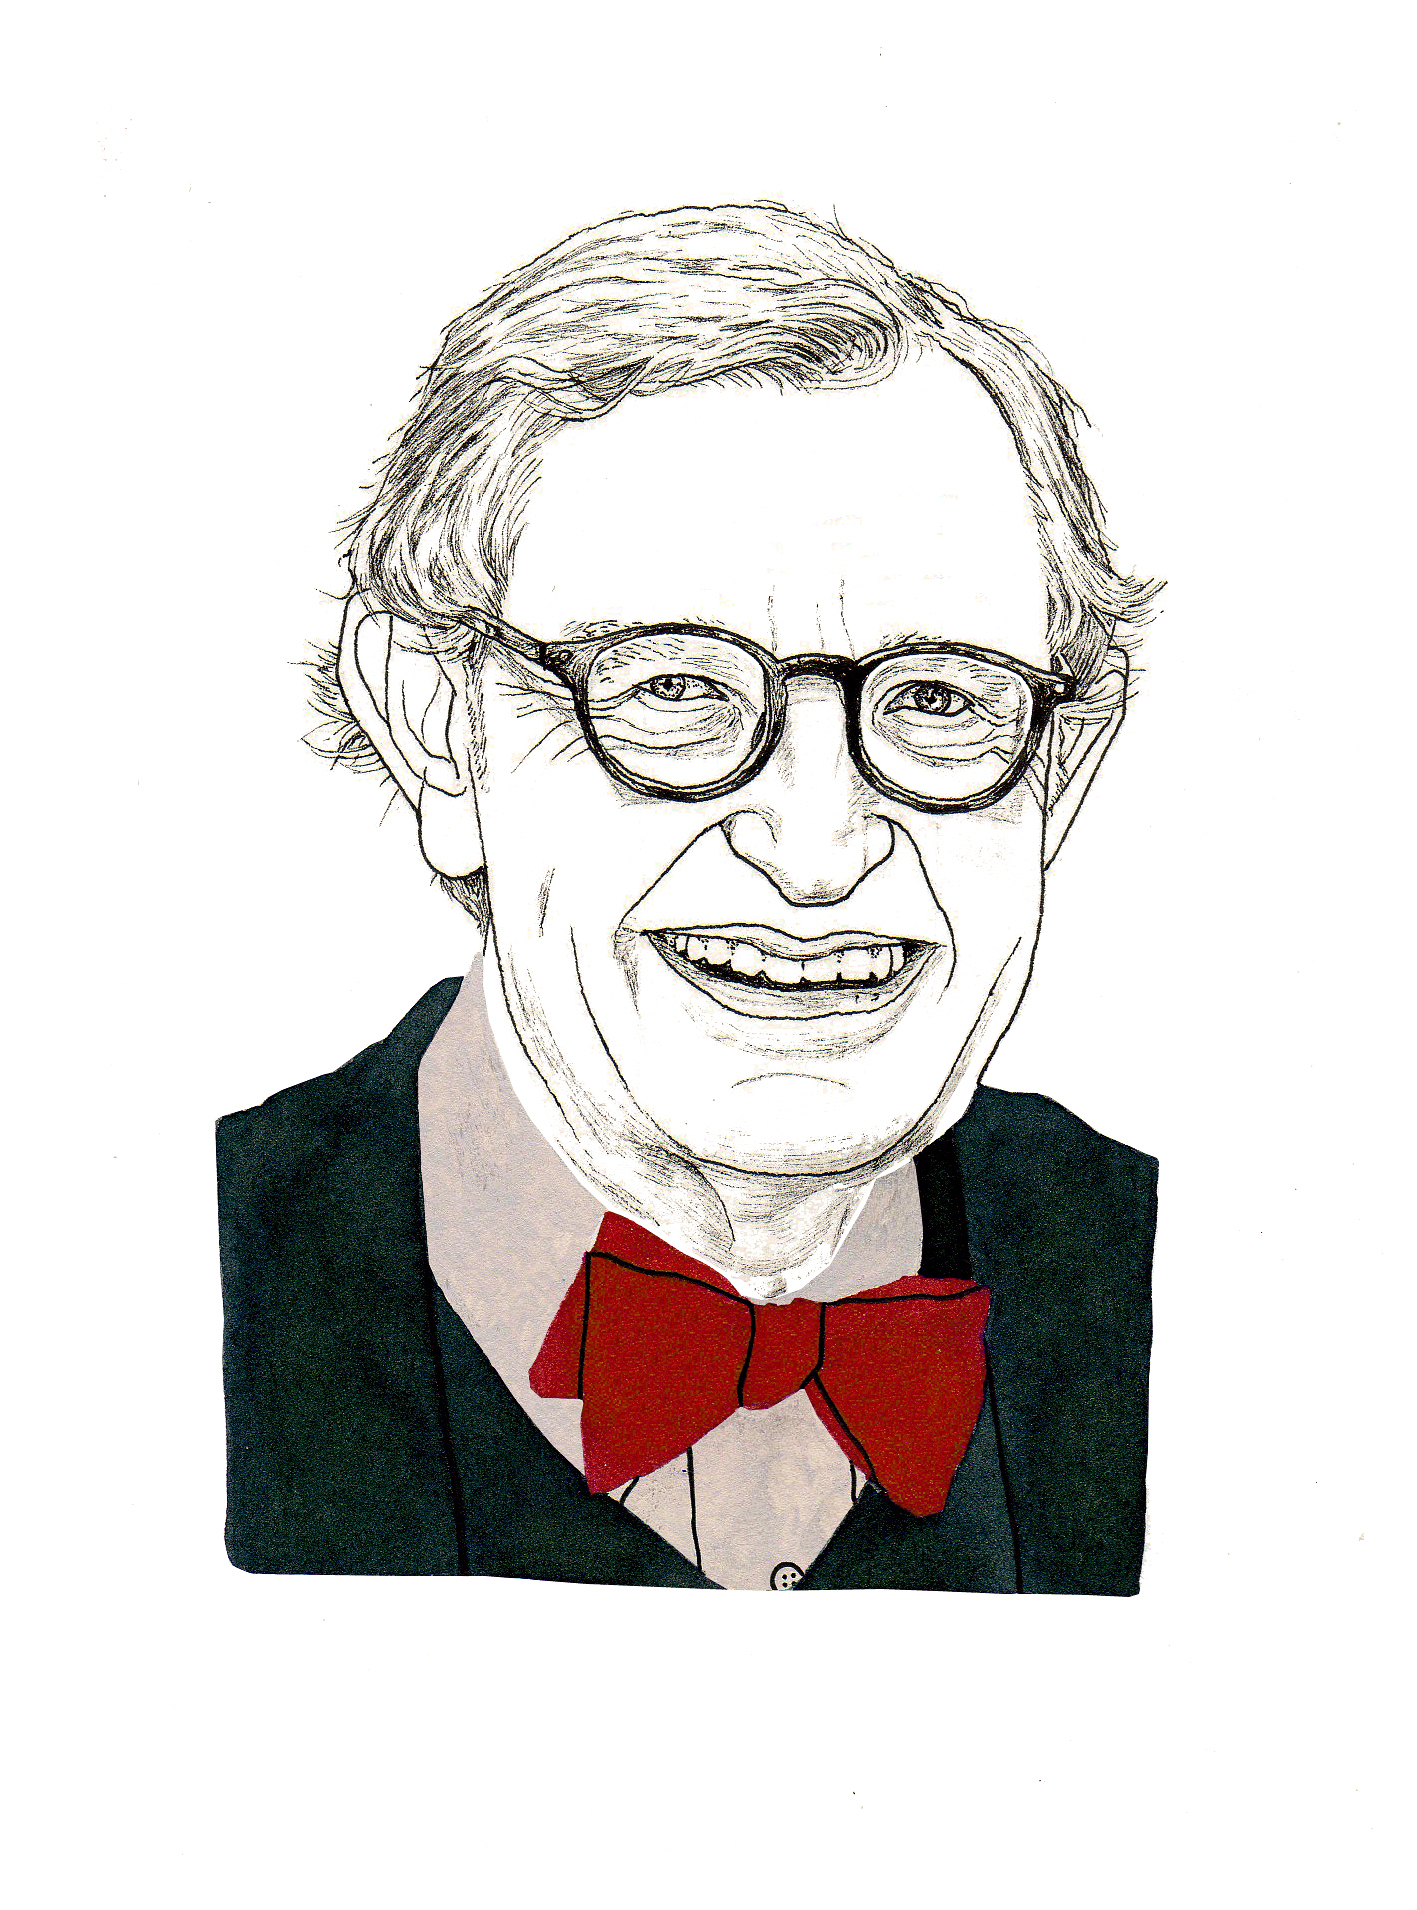 E. Gordon Gee (Illustration by Adam Cruft)